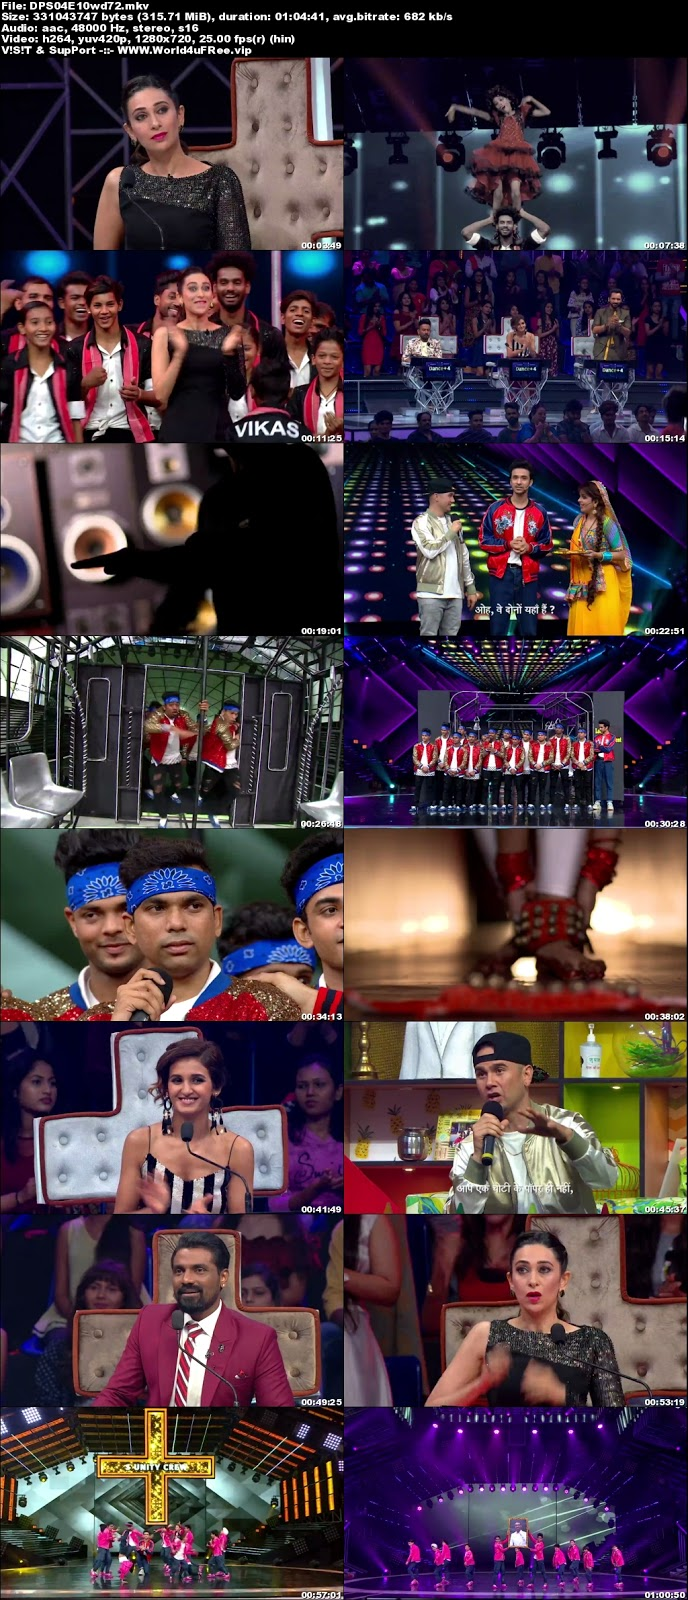 Dance Plus S4 10 November 2018 720p HDTV 300Mb x264 world4ufree.vip tv show Dance Plus 4 2018 hindi tv show Dance Plus 4 2018 Season 4 Star Plus tv show compressed small size free download or watch online at world4ufree.vip